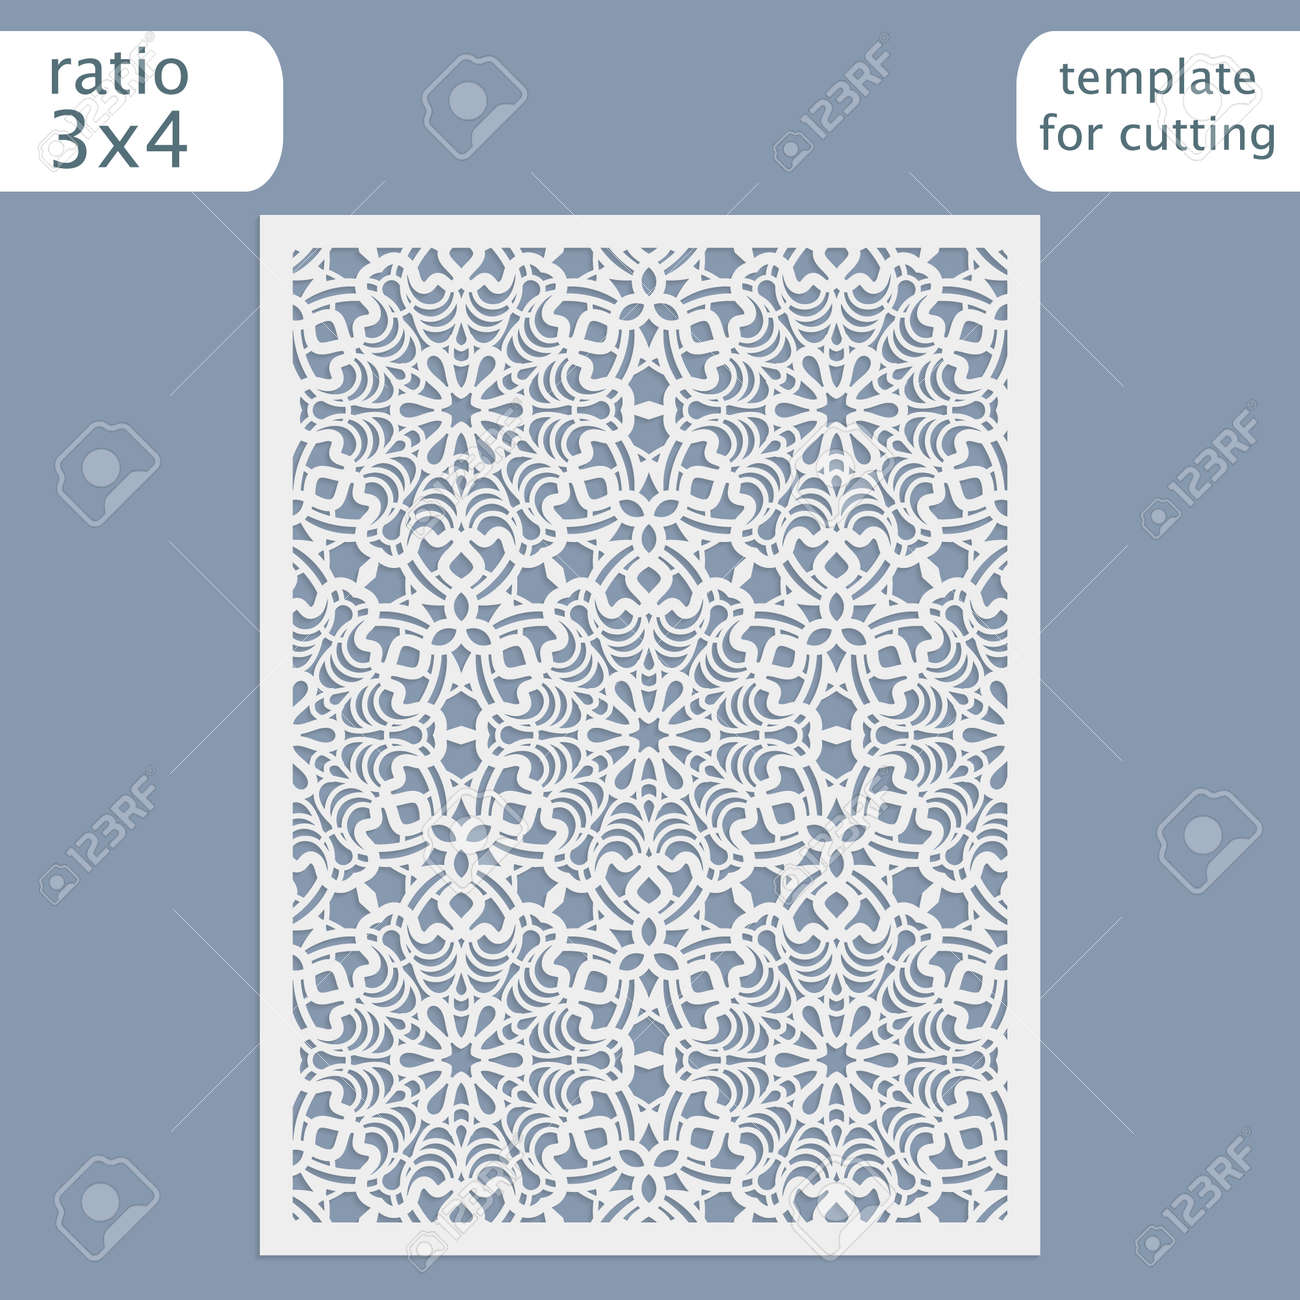 Laser Cut Wedding Invitation Card Template Cut Out The Paper Card With Lace Pattern Greeting Card Template For Cutting Plotter Vector